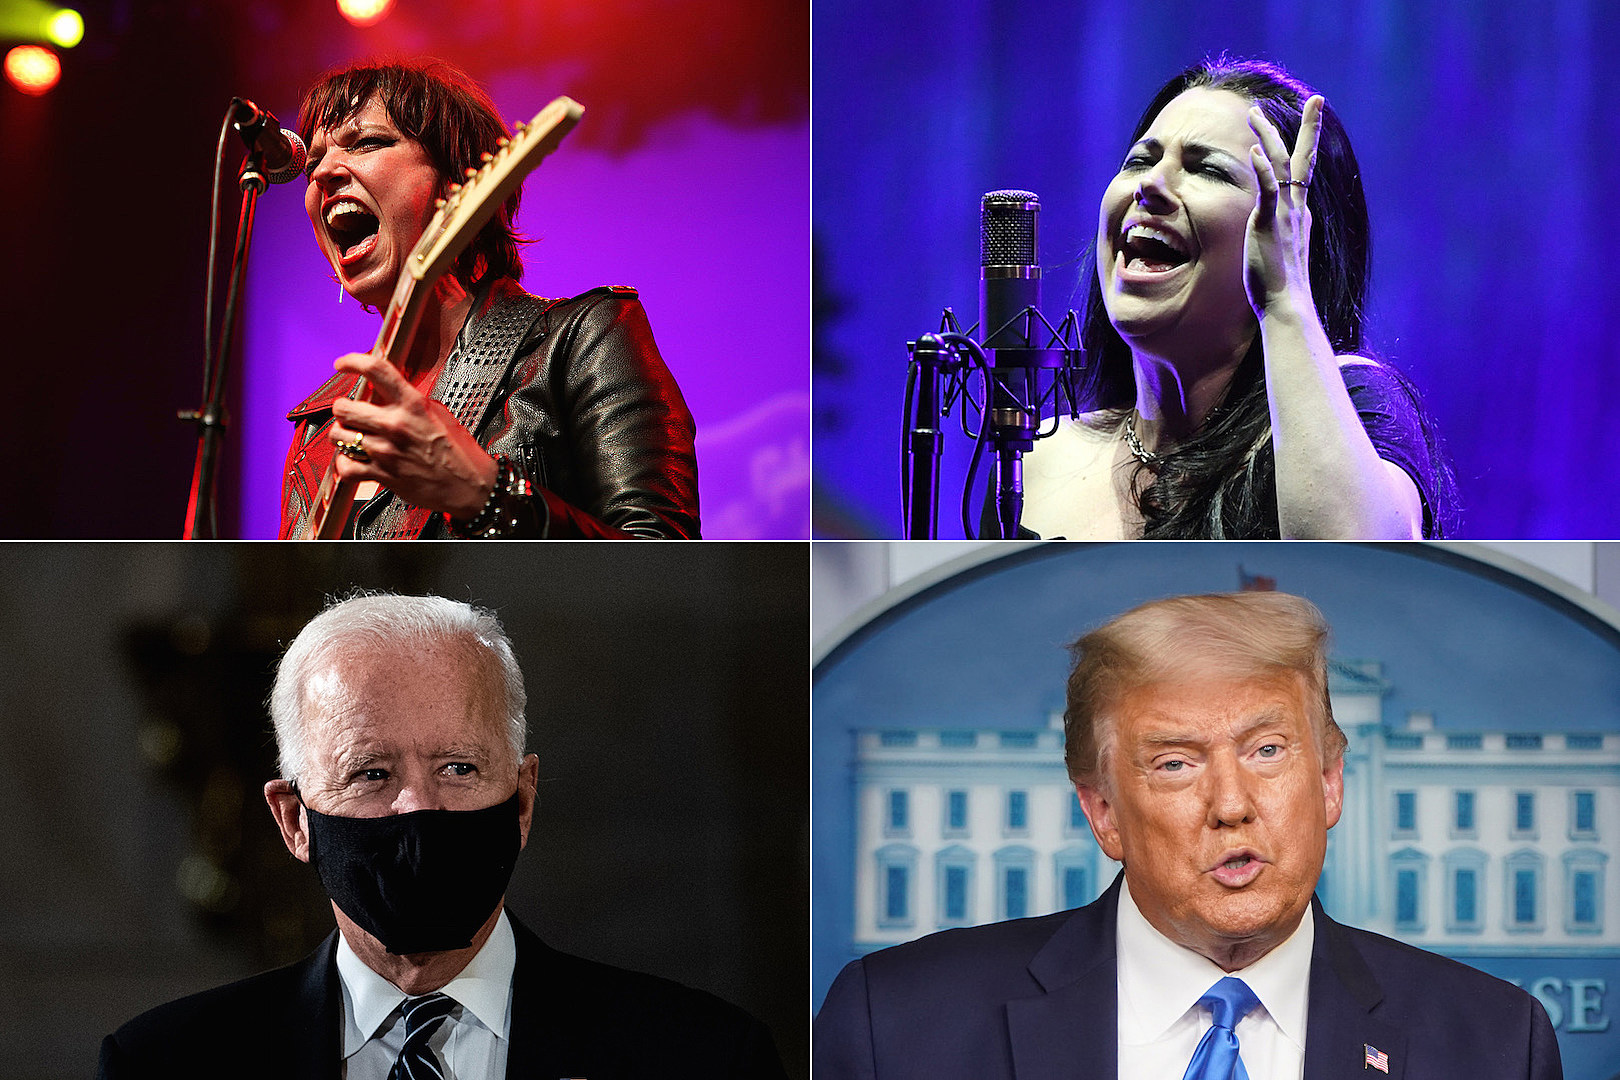 Lzzy Hale + Amy Lee: Election Is Good Vs. Evil Not Red Vs. Blue